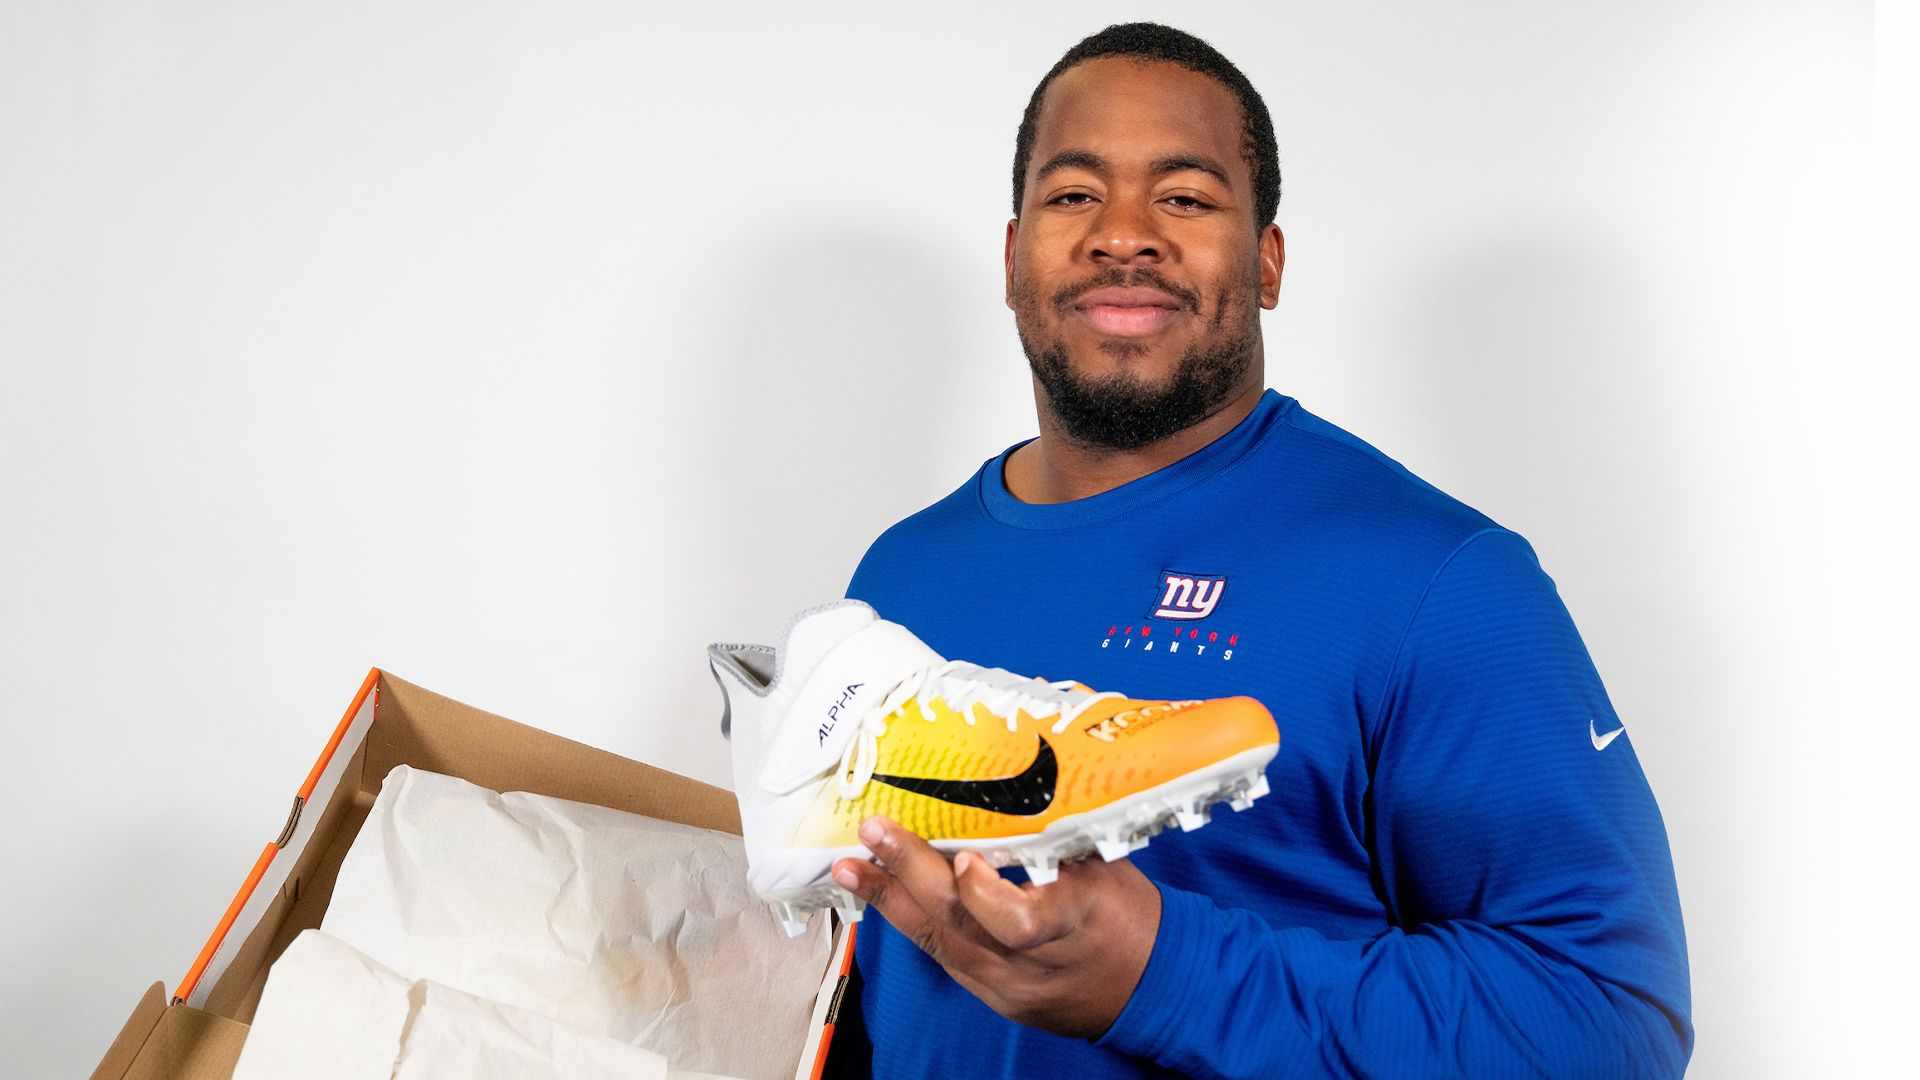 CLEAT UNBOX_BJHILL